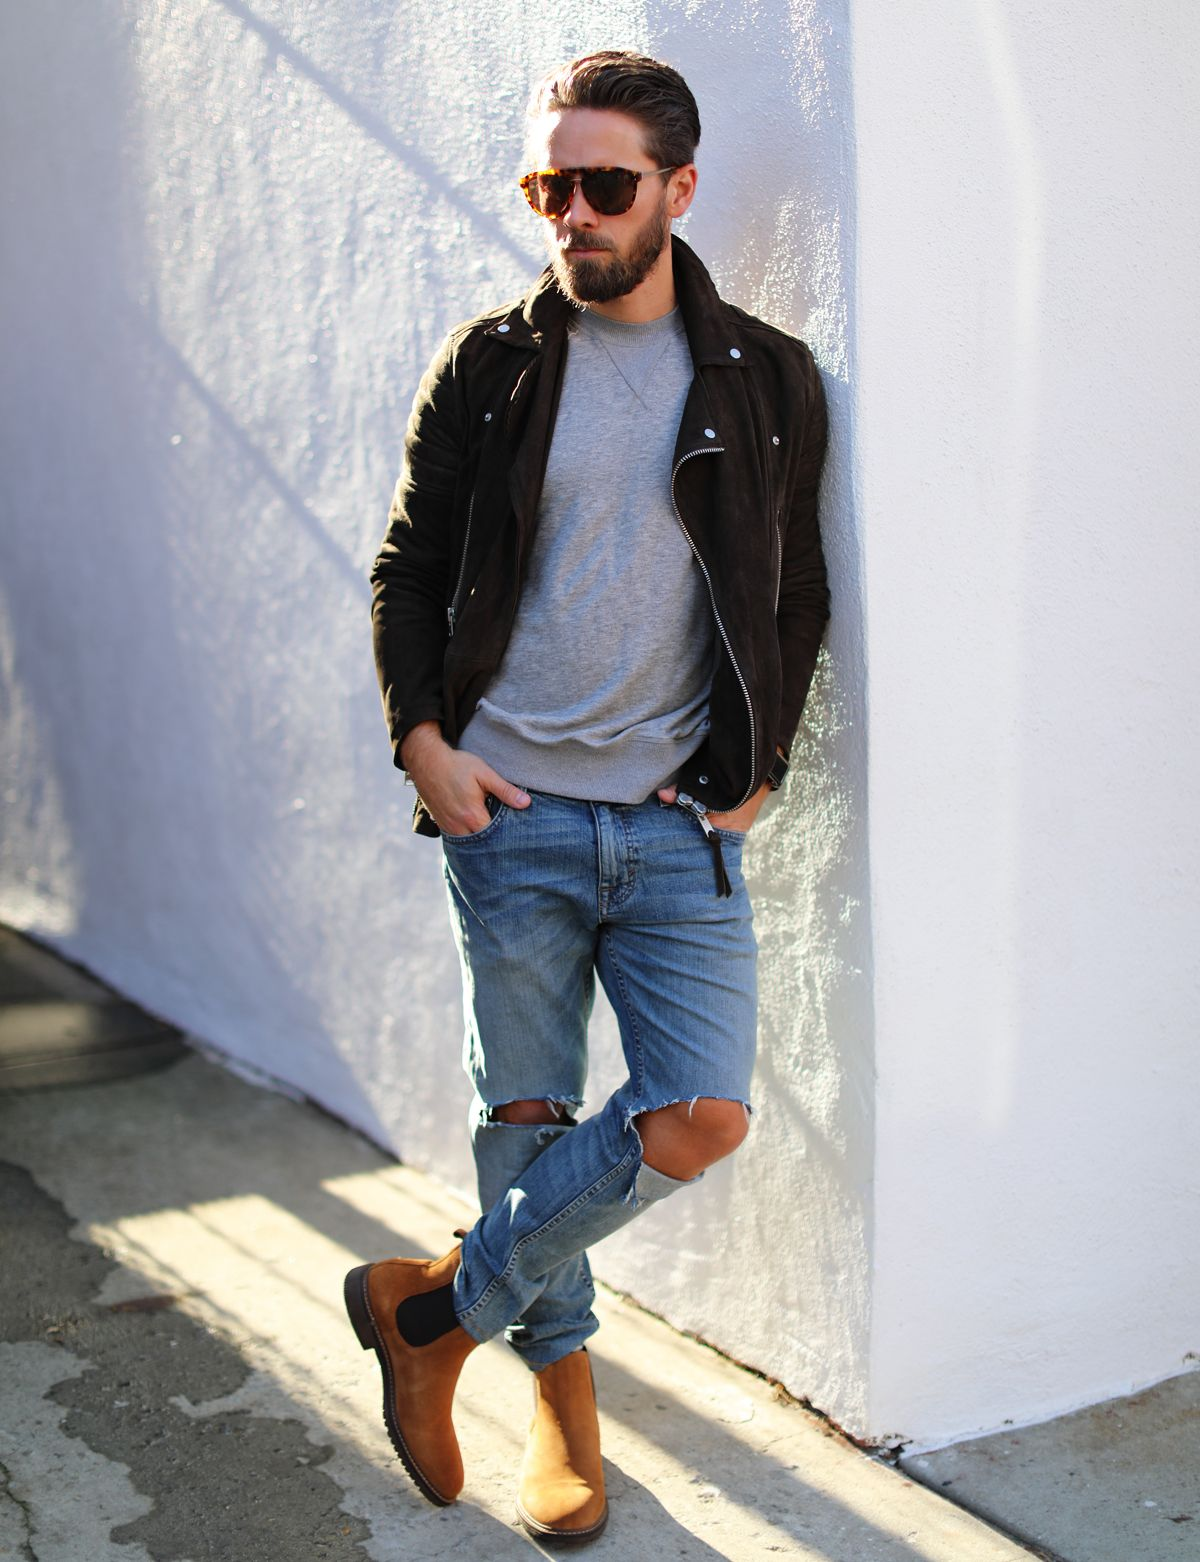 Steve Madden Bryson Chelsea Boots Review Outfit Ideas For Men Boots Outfit Men Chelsea Boots Outfit Brown Suede Chelsea Boots